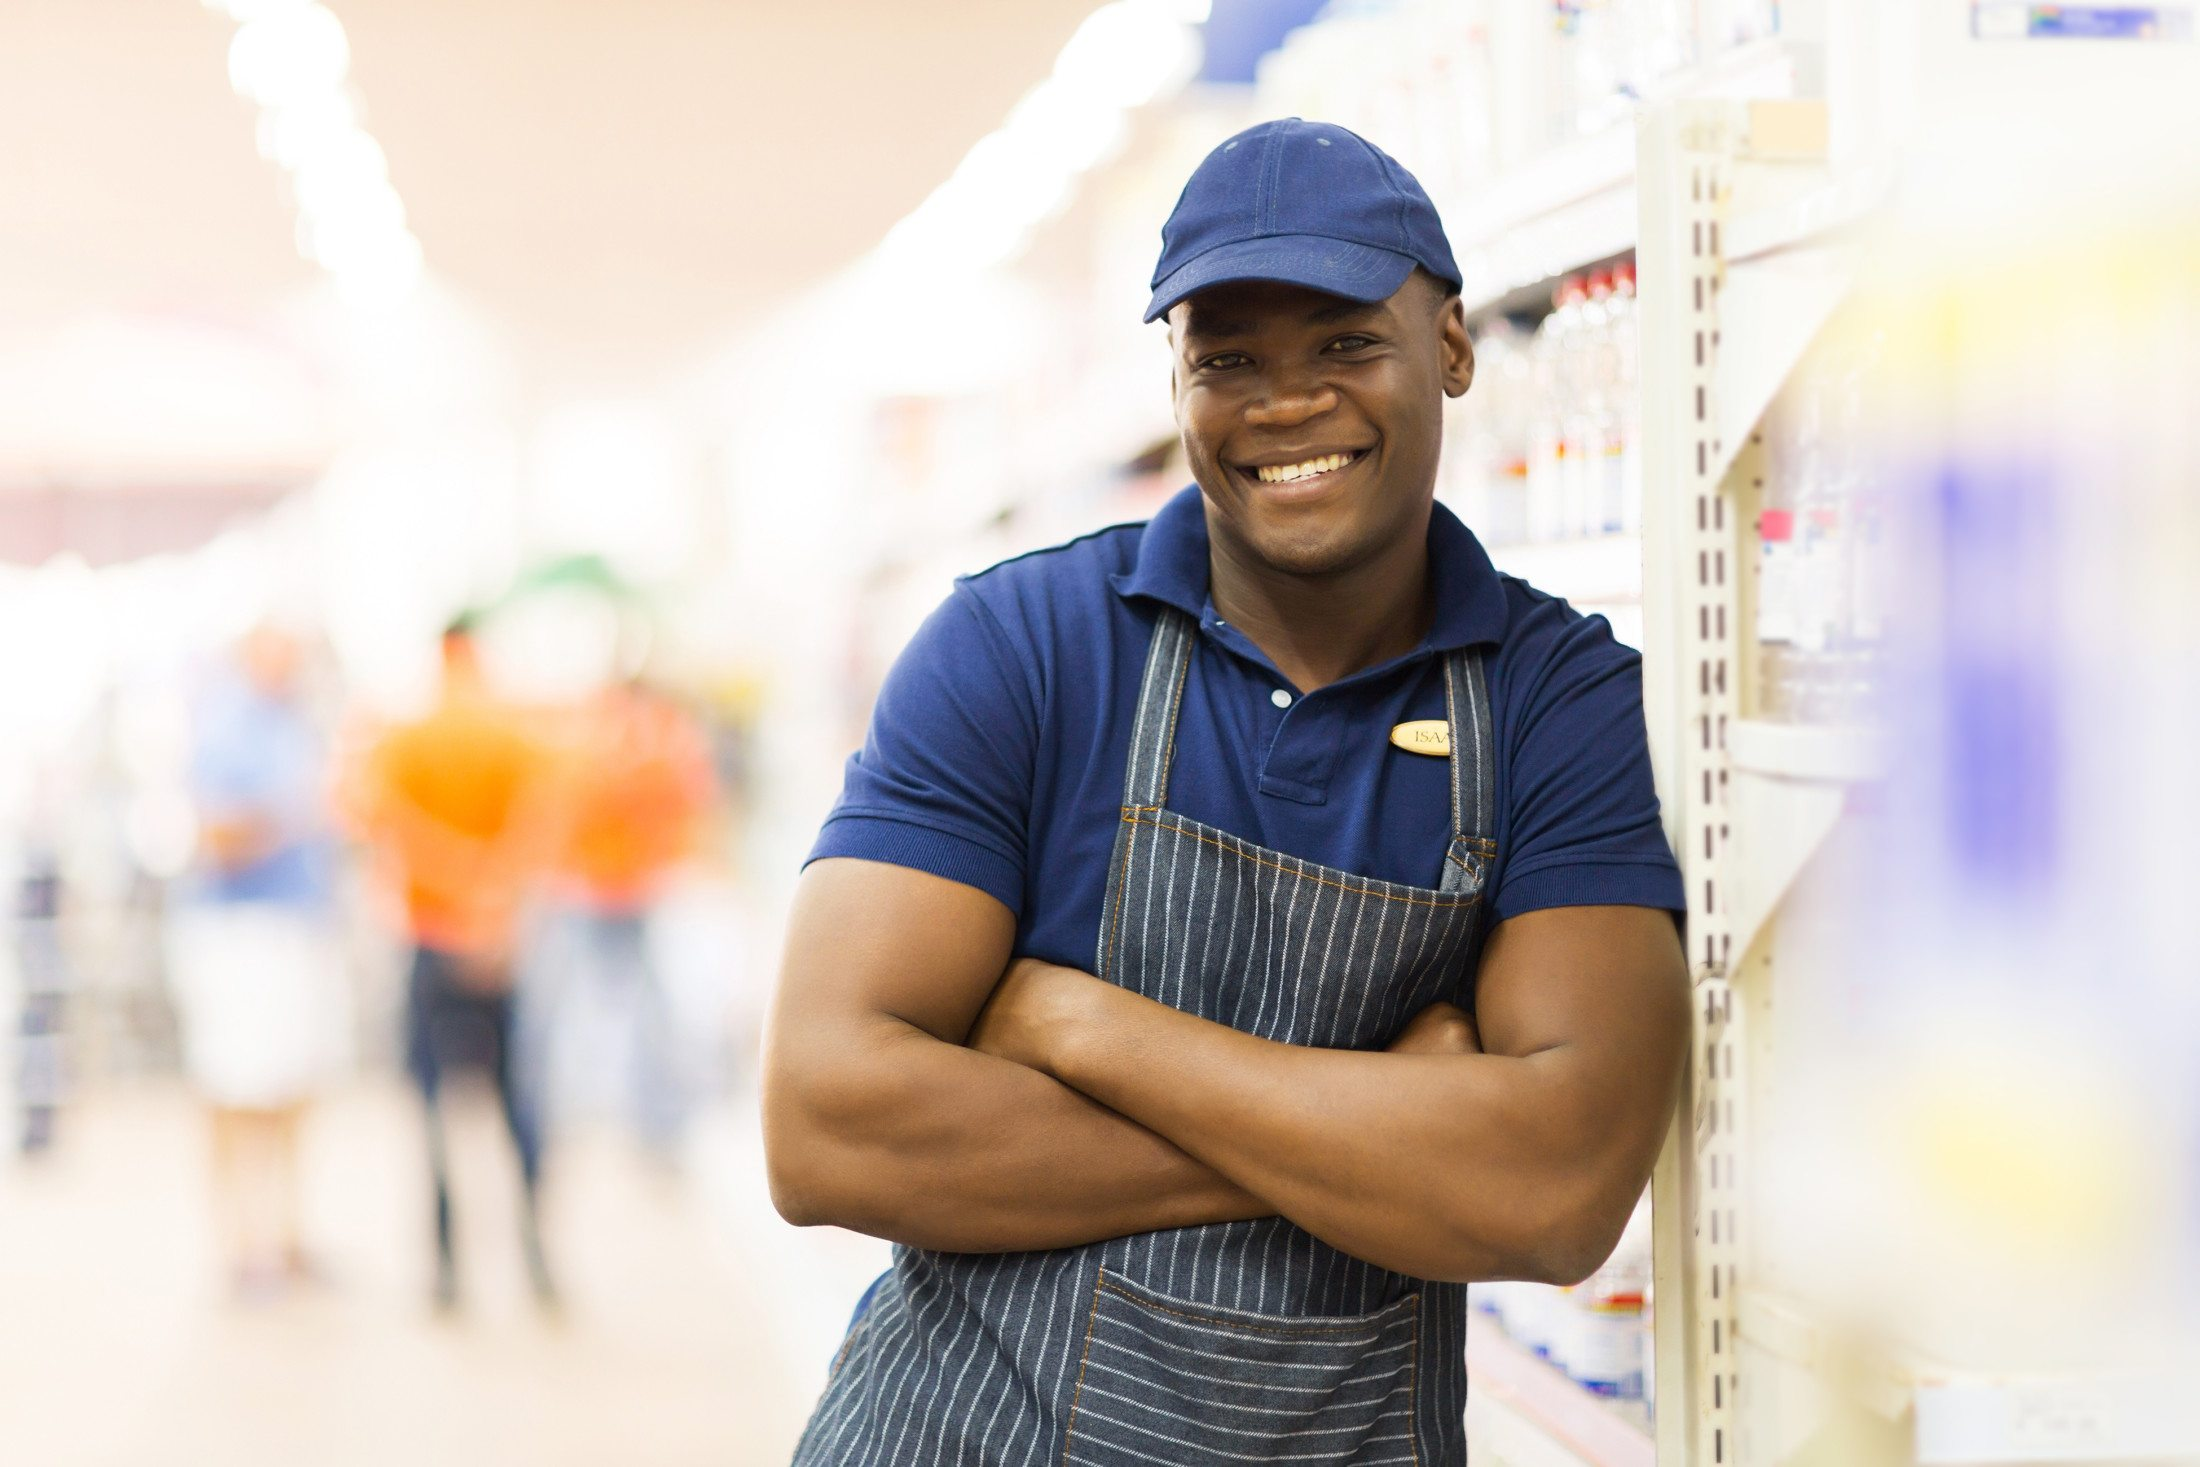 Owners of Small Stores Becoming More Diverse, Study Finds